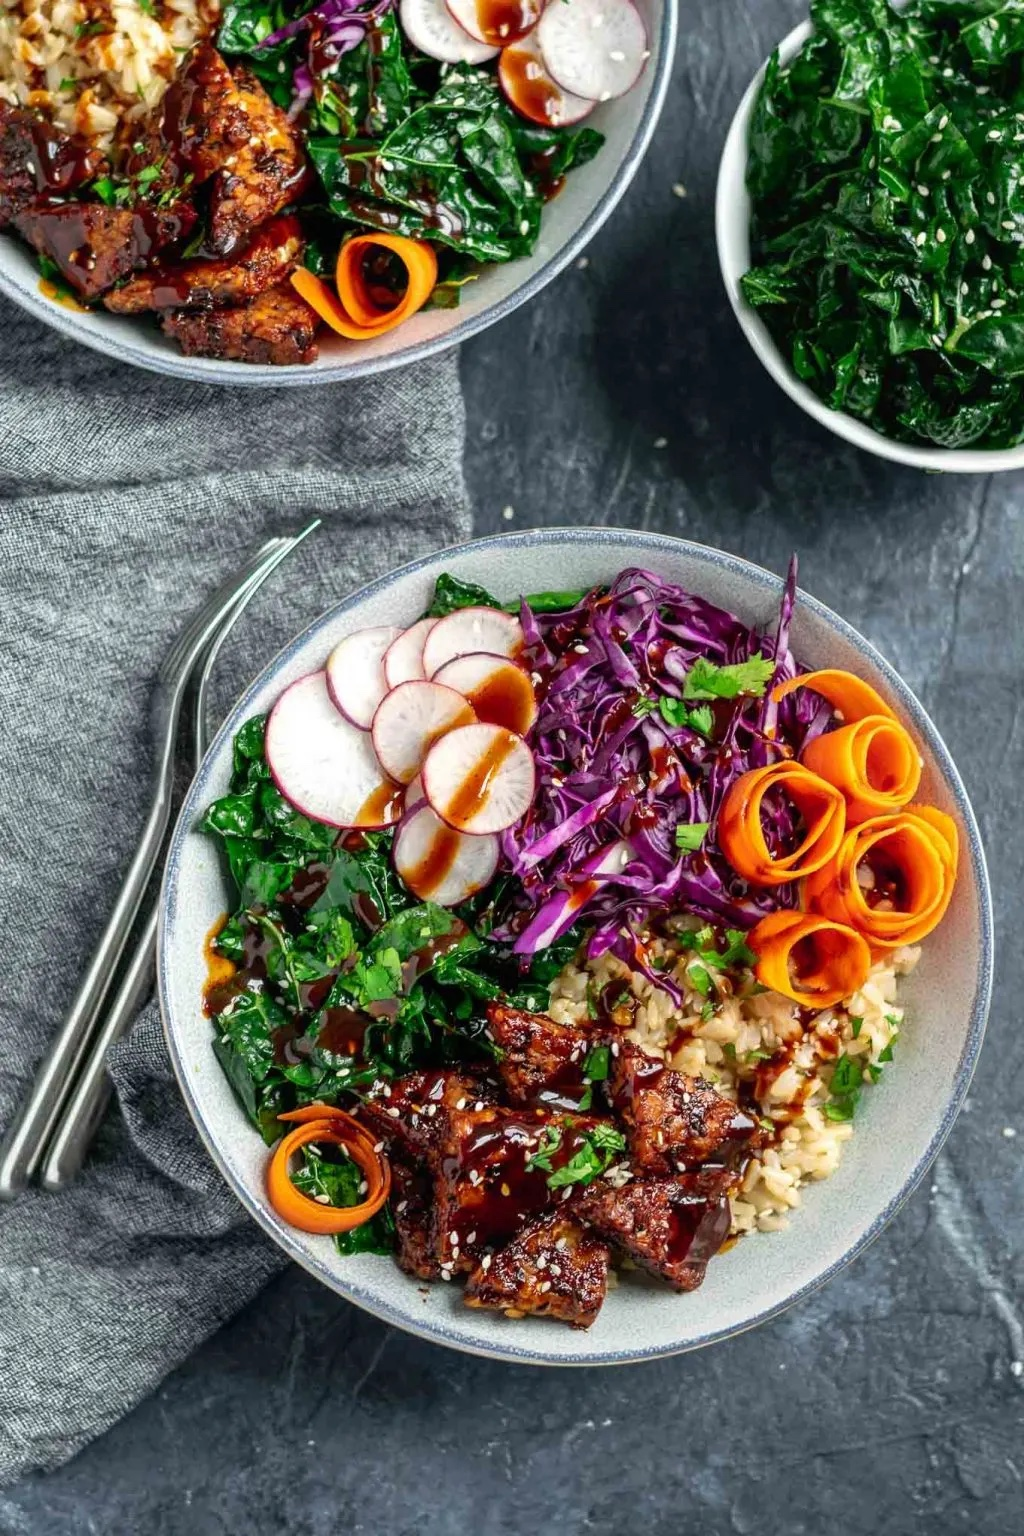 2021 meal plan ideas: Hoisin Glazed Tempeh Bowls at The Curious Chickpea